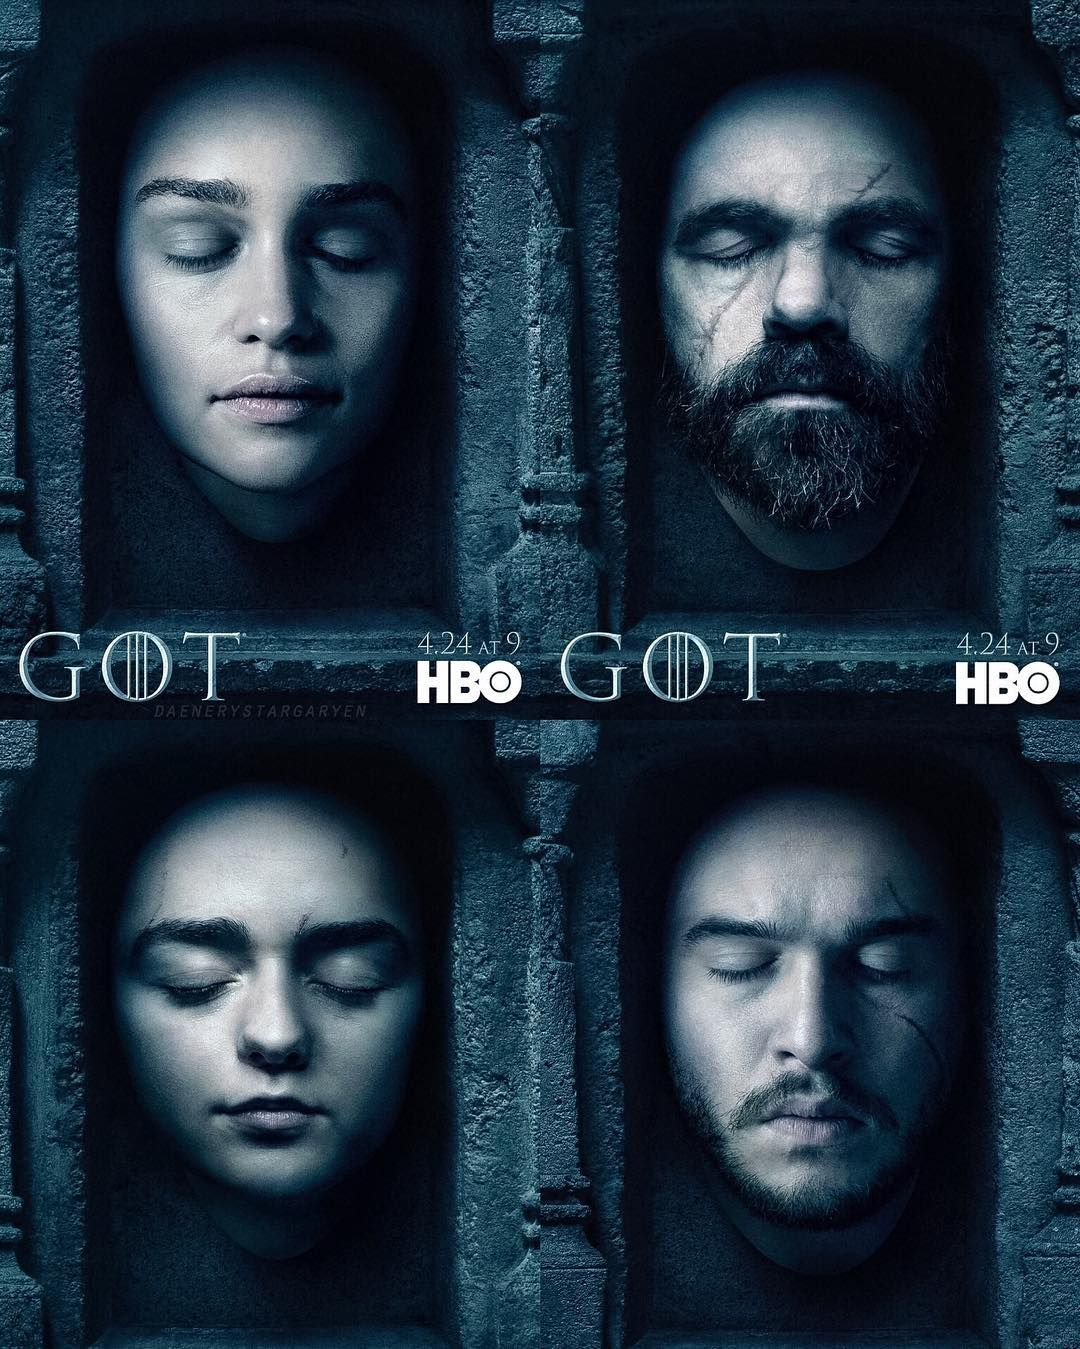 Official season 6 posters! There are more of other characters on the official GoT Twitter page! #gameofthrones #GoTSeason6 by daenerystargaryen